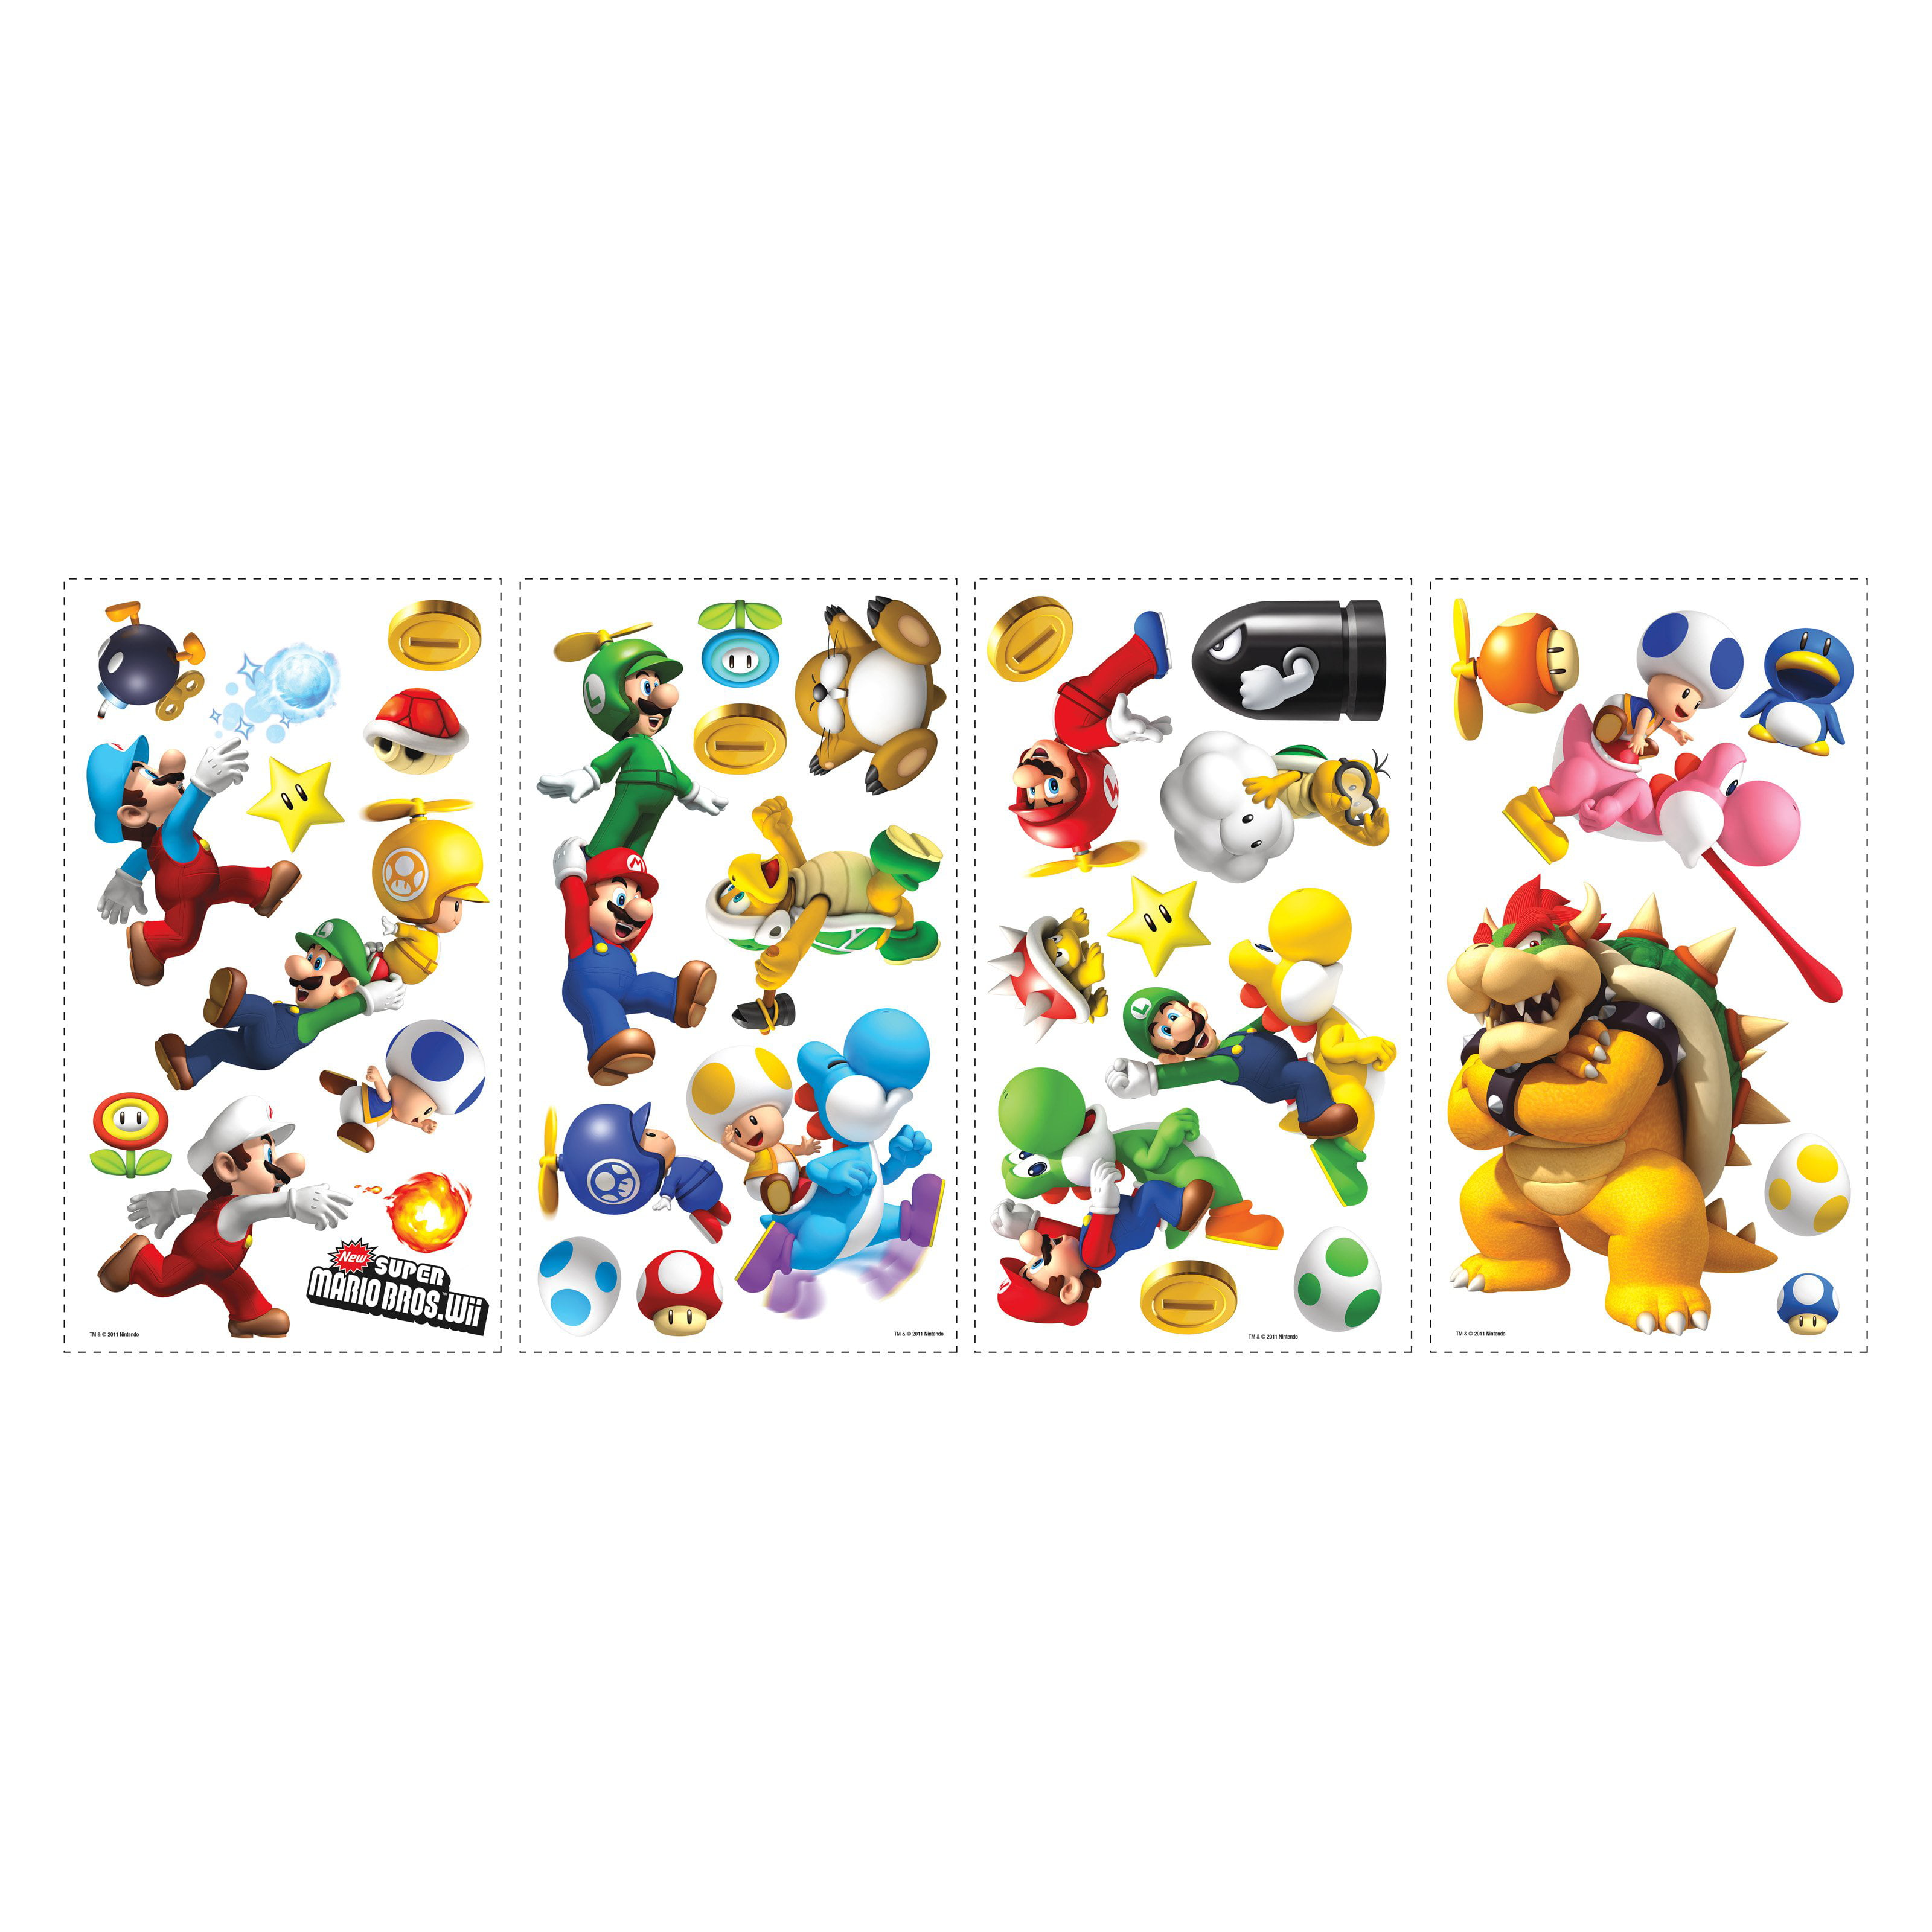 Nintendo - Super Mario Bros. Wii Peel and Stick Wall Decals - Walmart.com